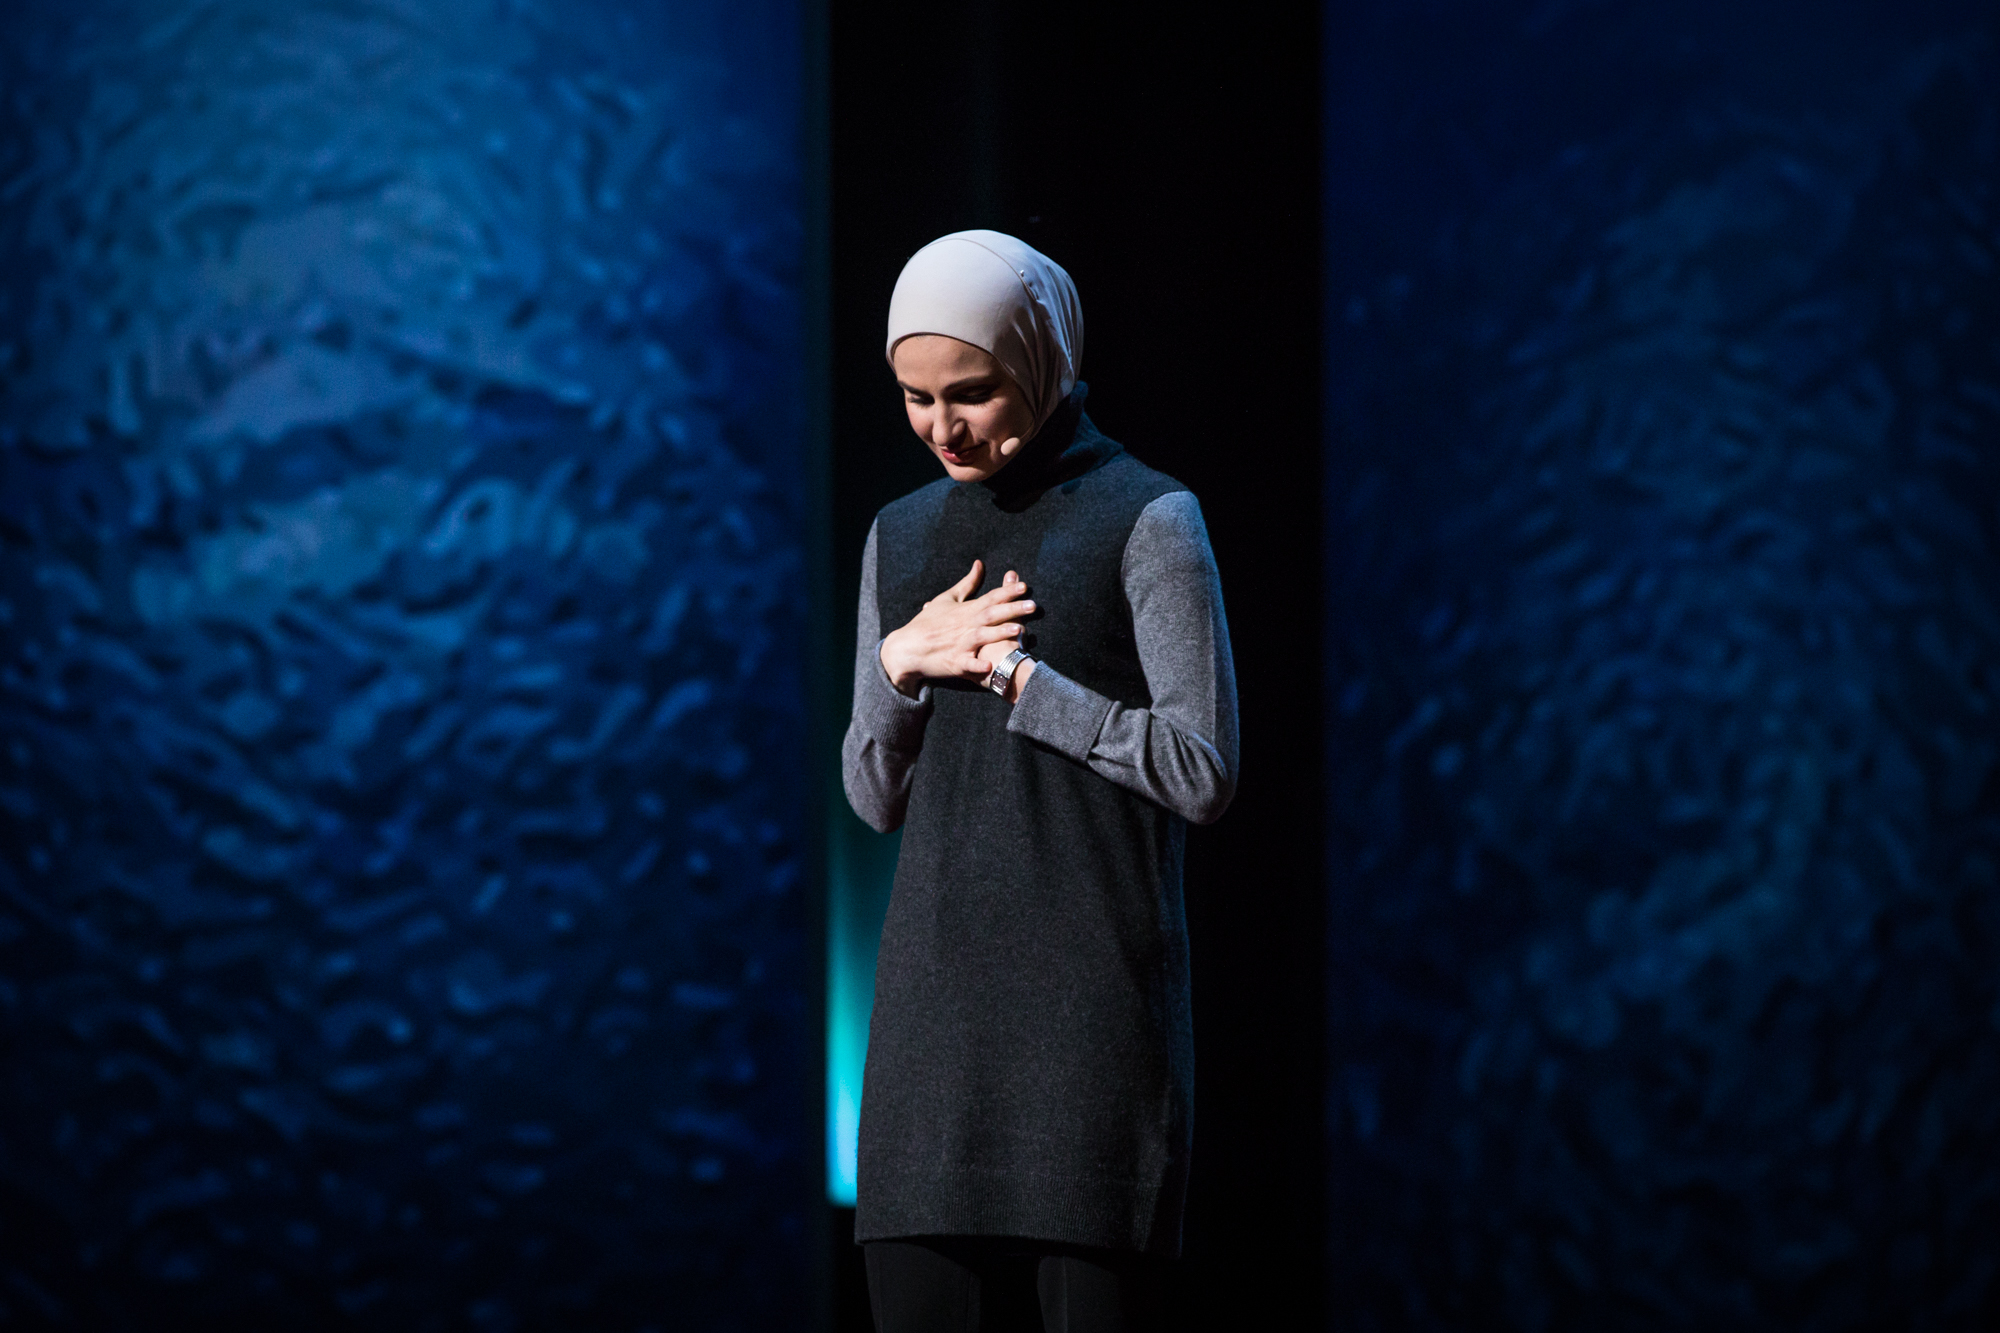 Suzanne Barakat at TEDWomen 2016 - It's About Time, October 26-28, 2016, Yerba Buena Centre for the Arts, San Francisco, California. Photo: Marla Aufmuth / TED